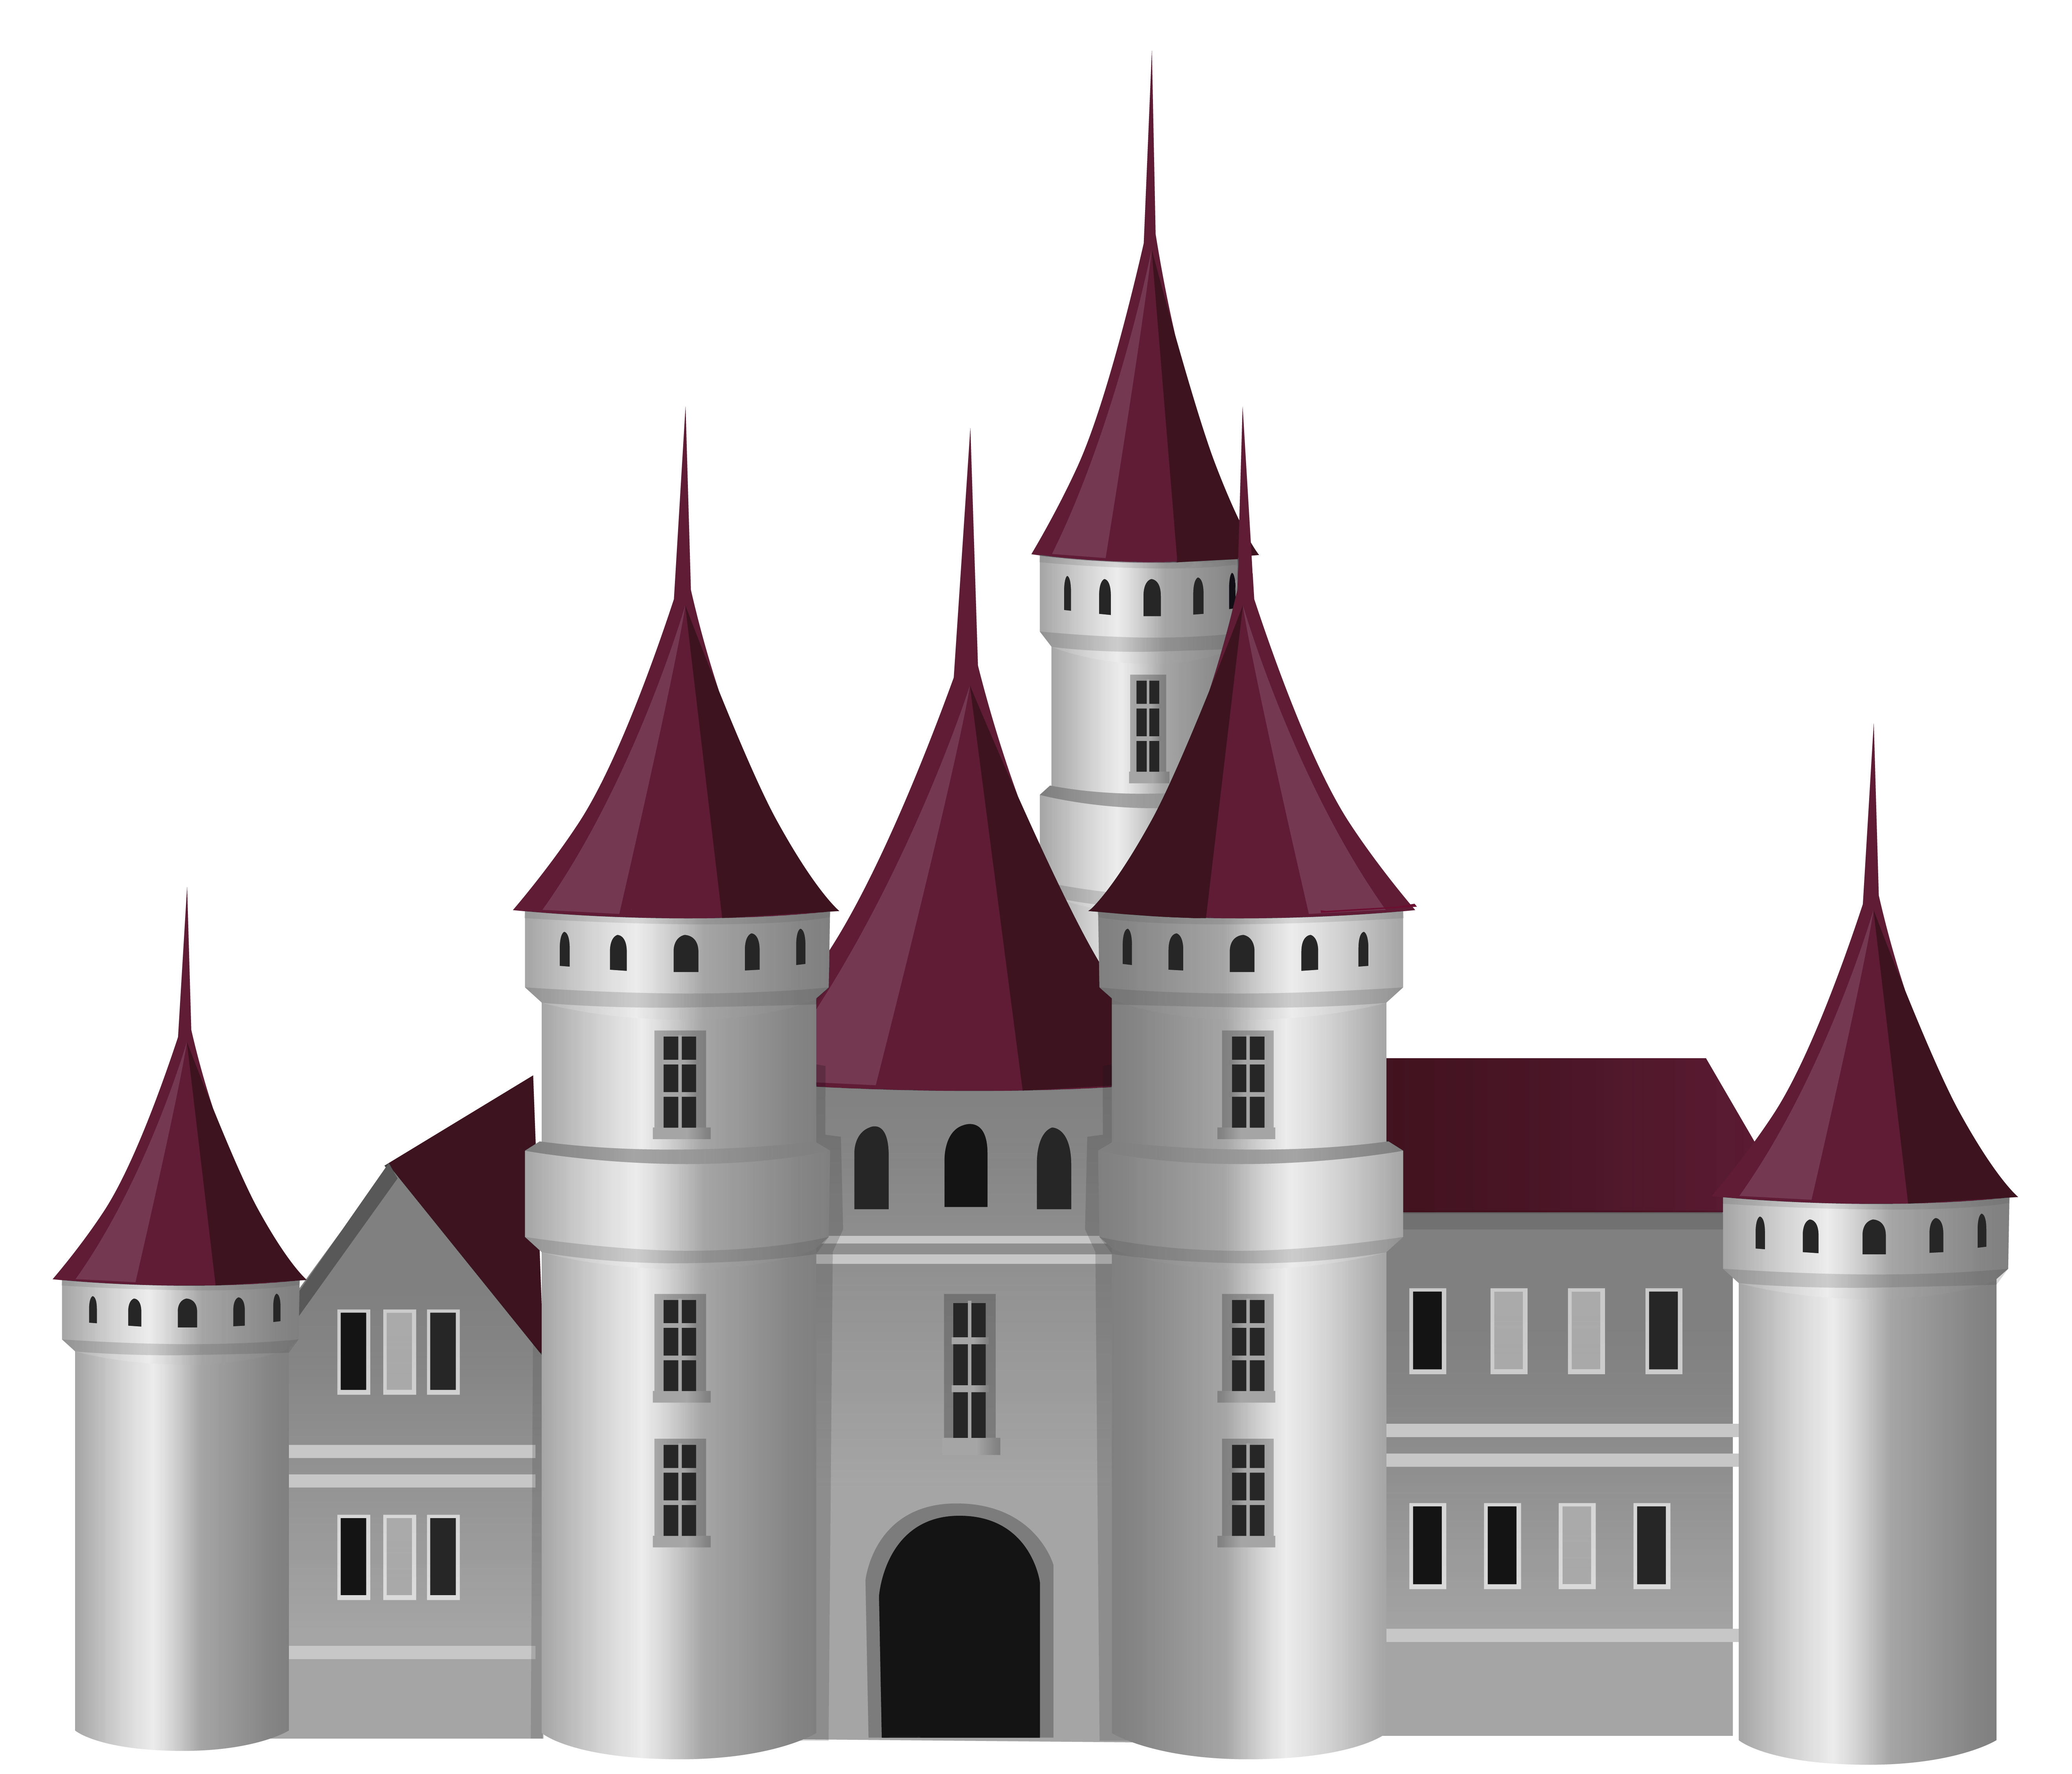 Fish tank castle clipart png royalty free stock Fish Tank Castle Clipart ✓ The Clipart png royalty free stock